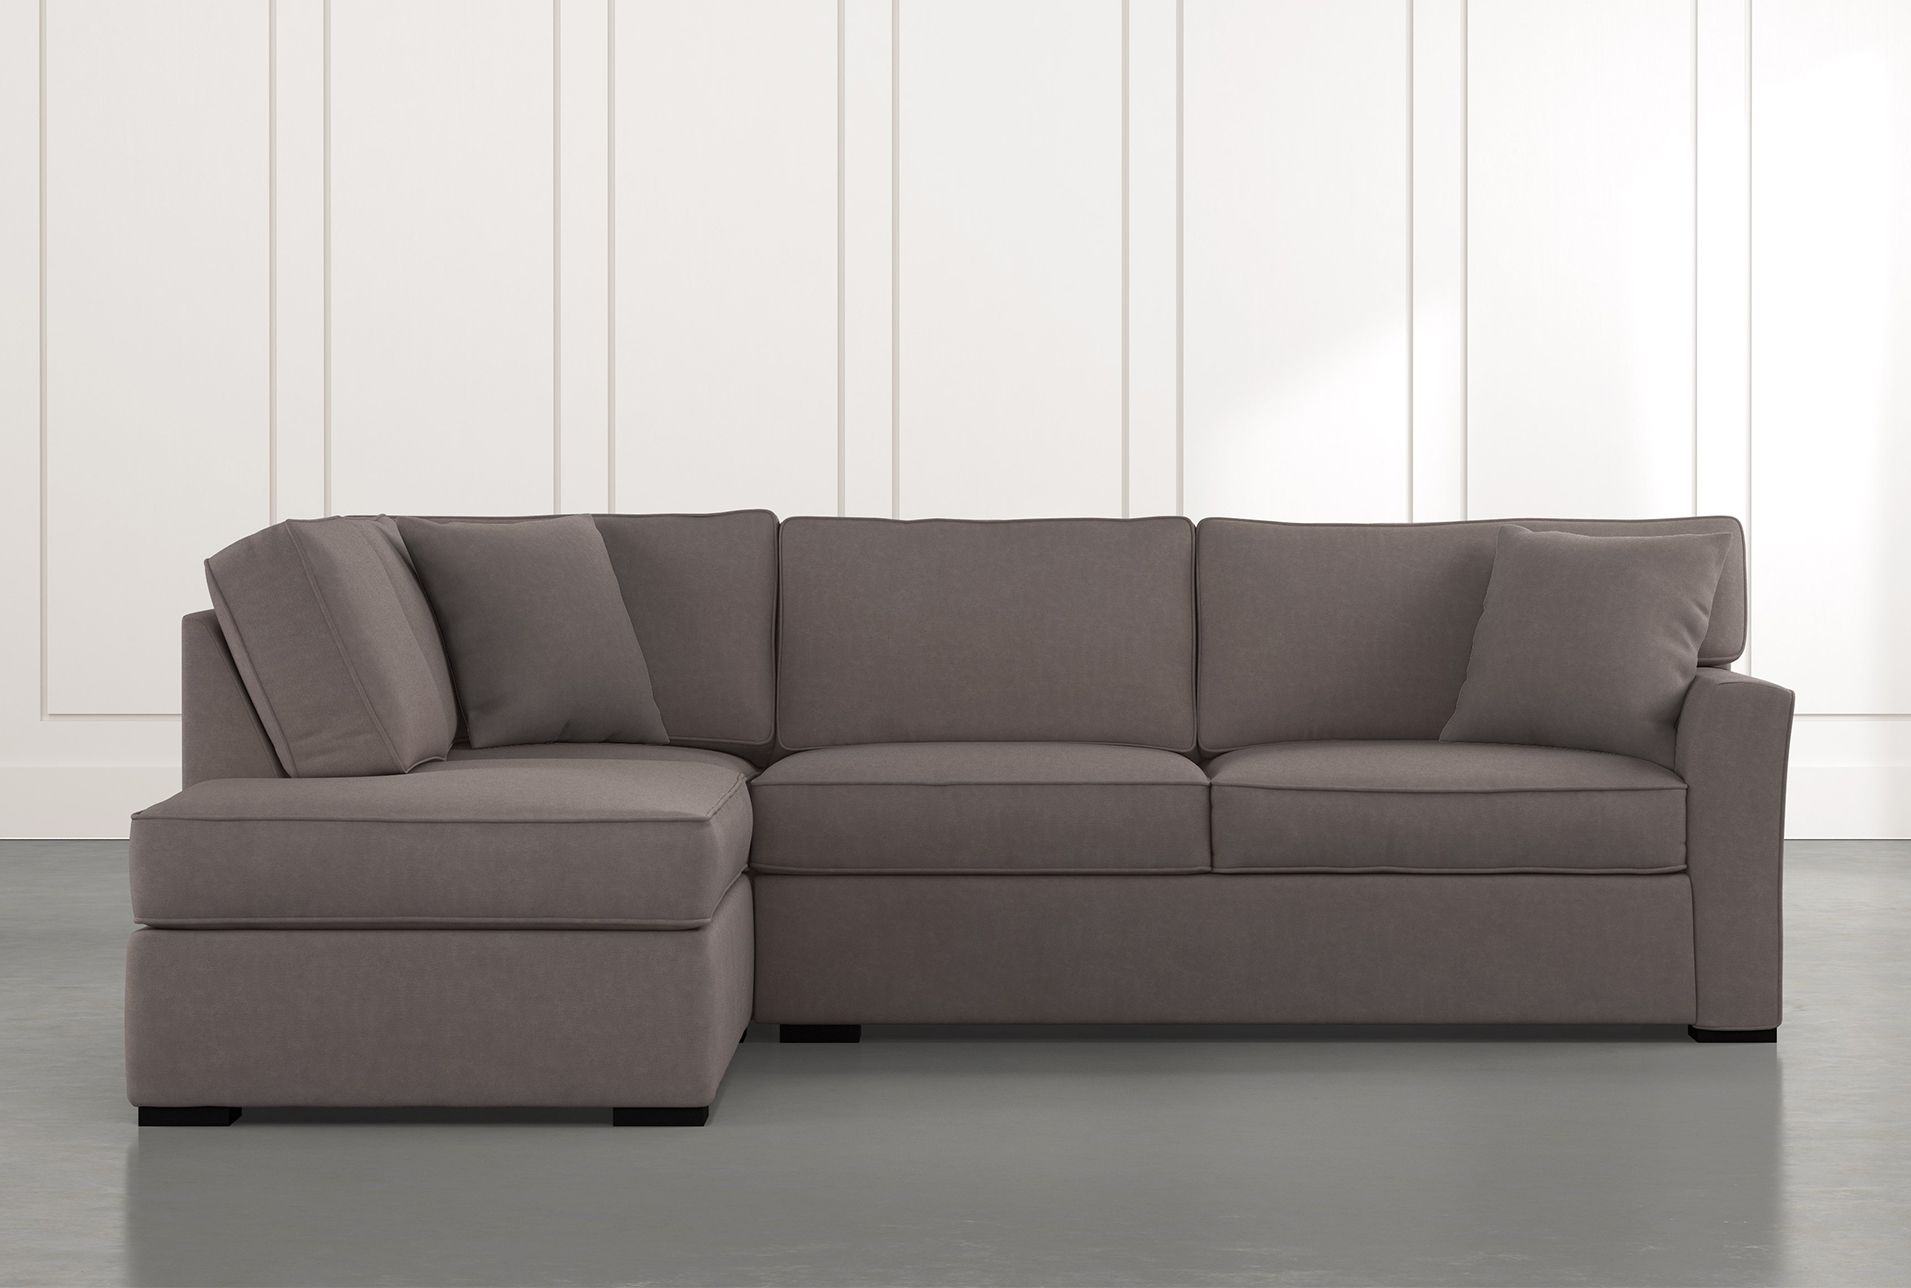 Aspen Dark Grey 2 Piece Sleeper Sectional With Left Arm Inside Aspen 2 Piece Sleeper Sectionals With Laf Chaise (View 5 of 15)